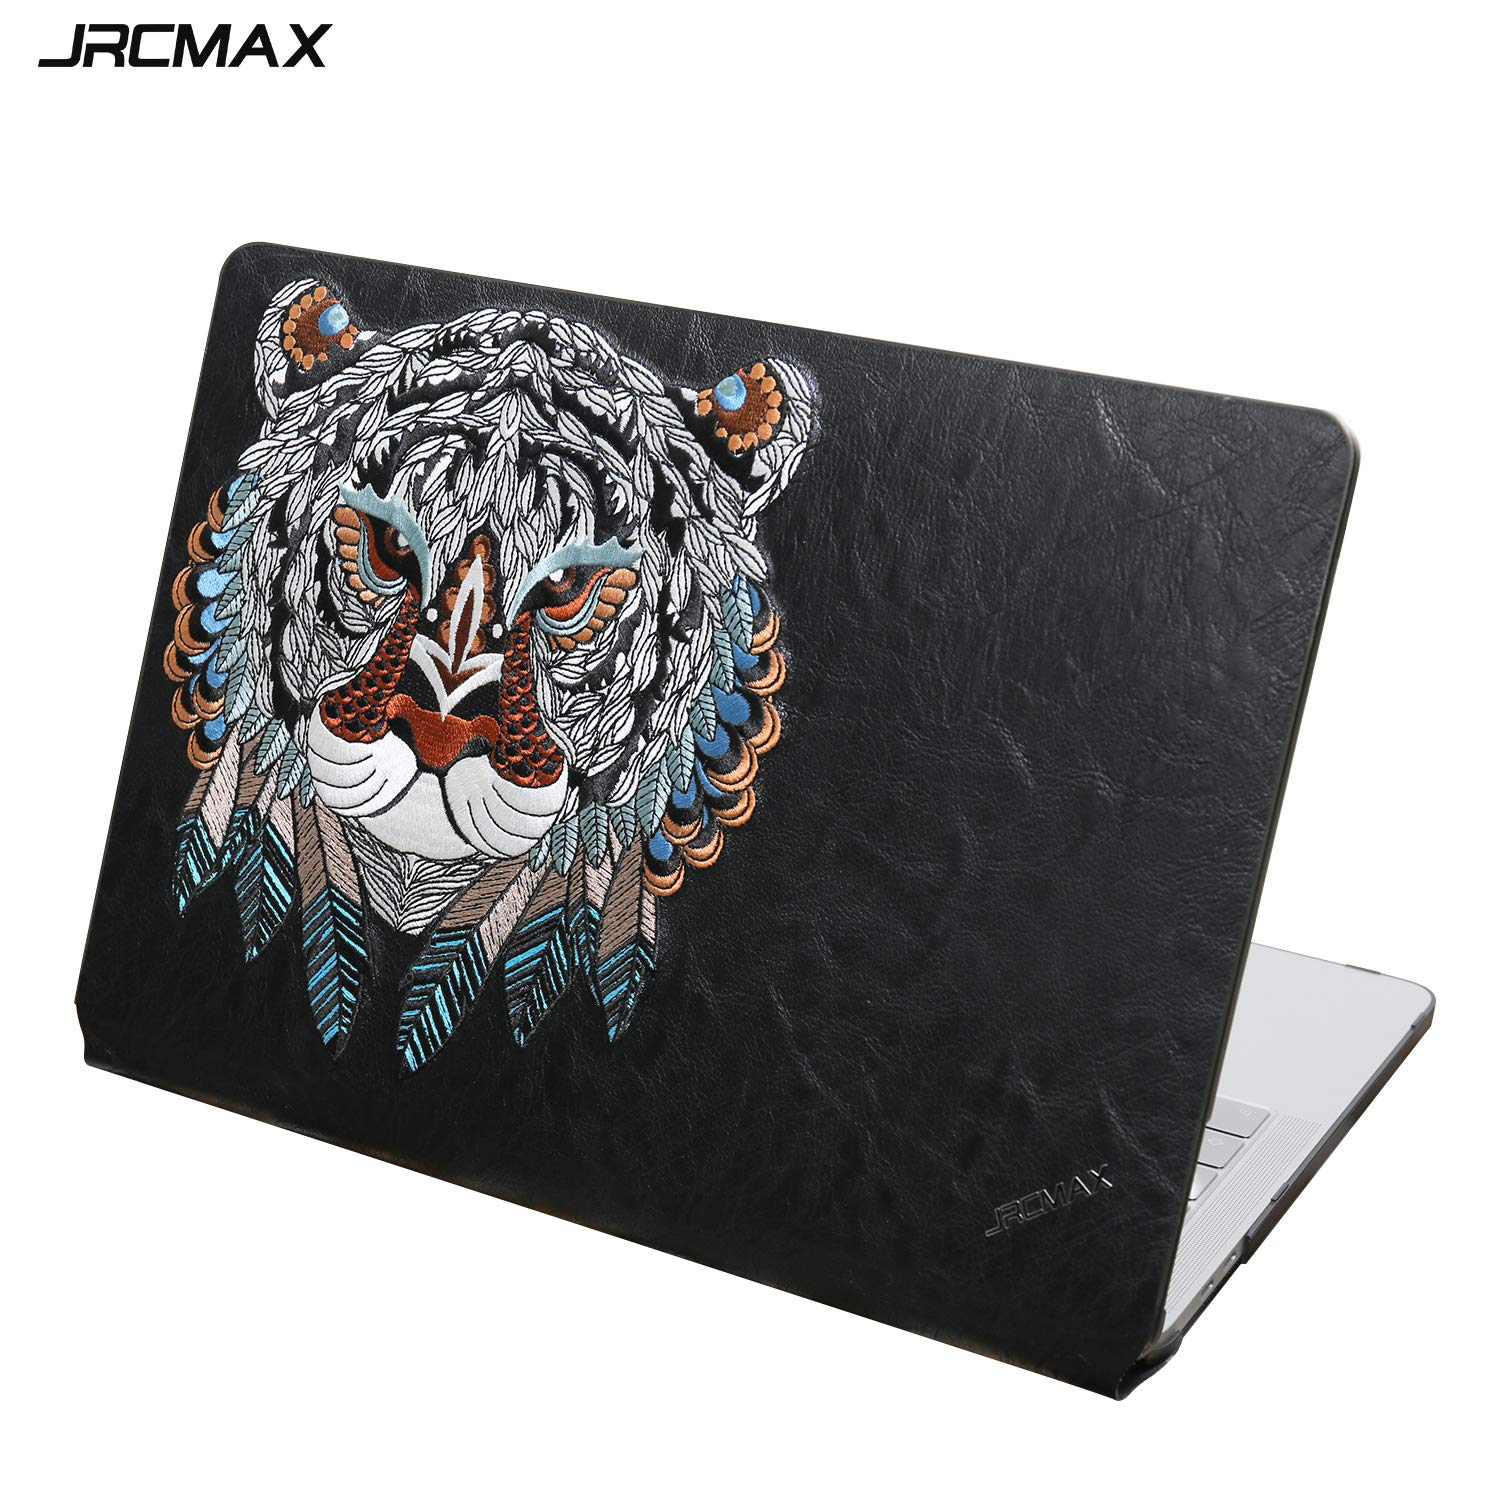 JRCMAX MacBook Pro 13 Case 2017 & 2016 Release, [Embroidered Series] Premium Leather Hard Case Shell for Apple MacBook Pro 13 Inch w/Without Touch Bar and Touch ID (MacBook Pro 13'' 2017/2016, Tiger)